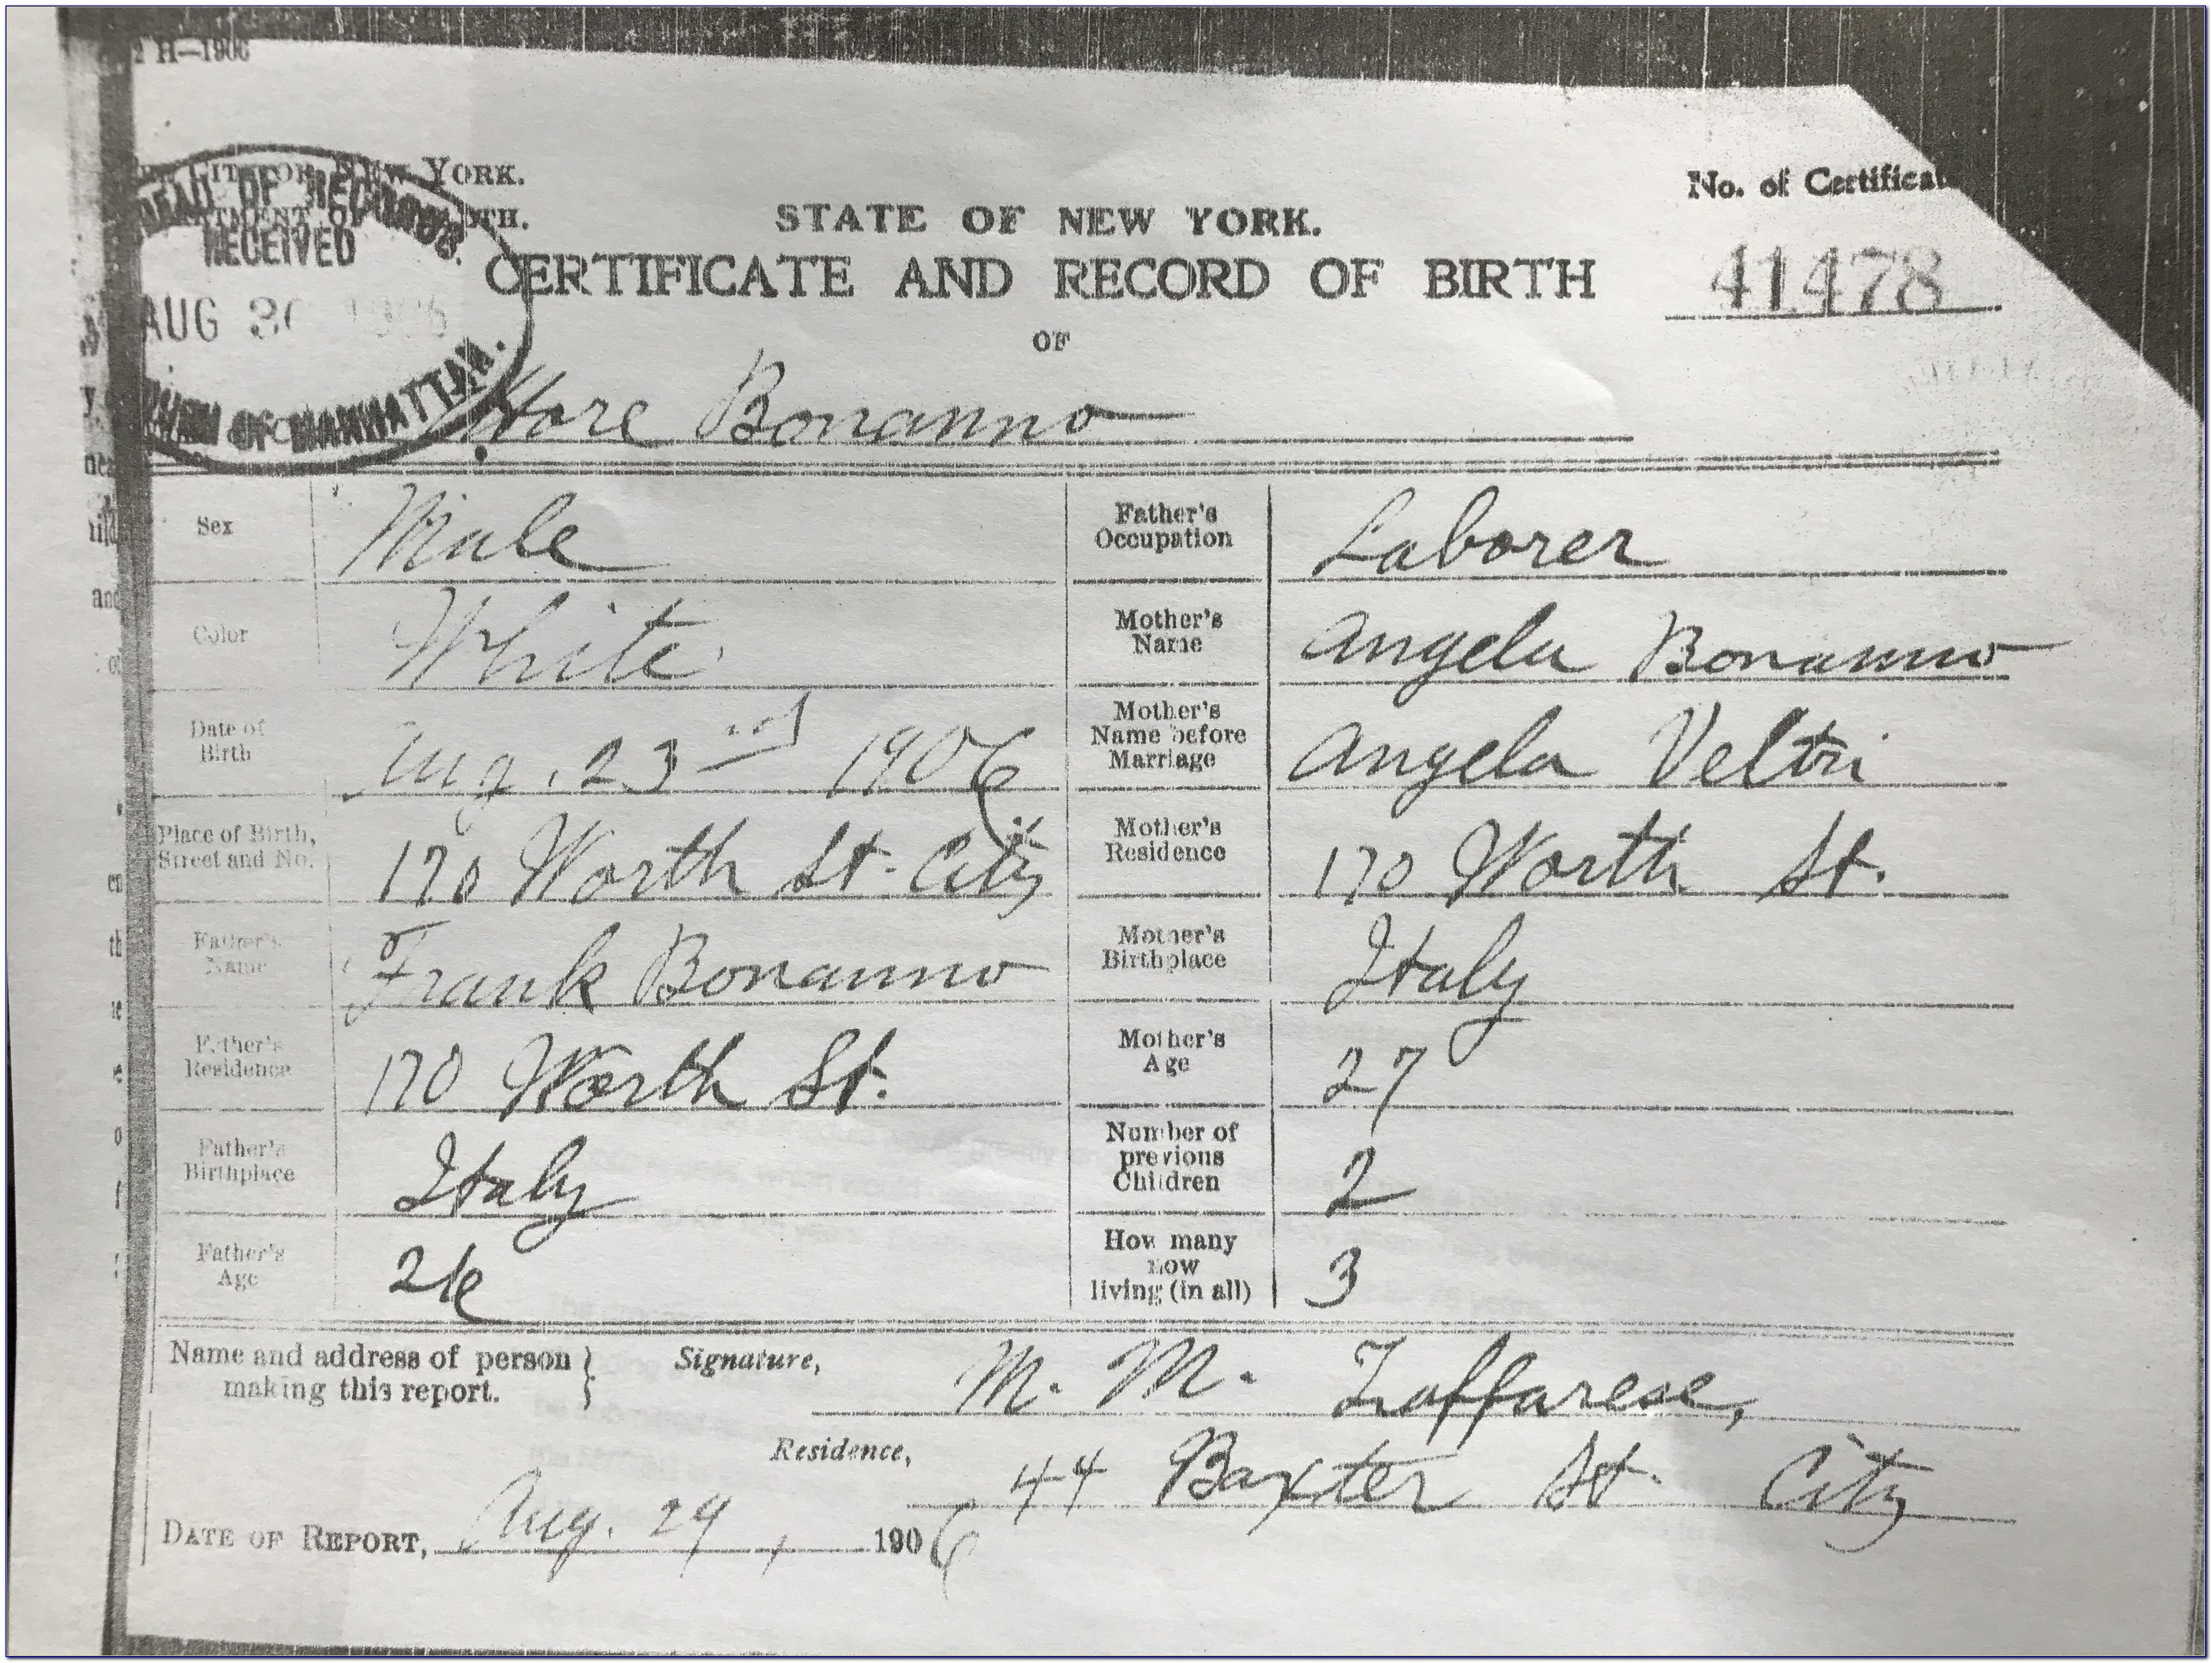 Nyc Vital Records Birth Certificate Application